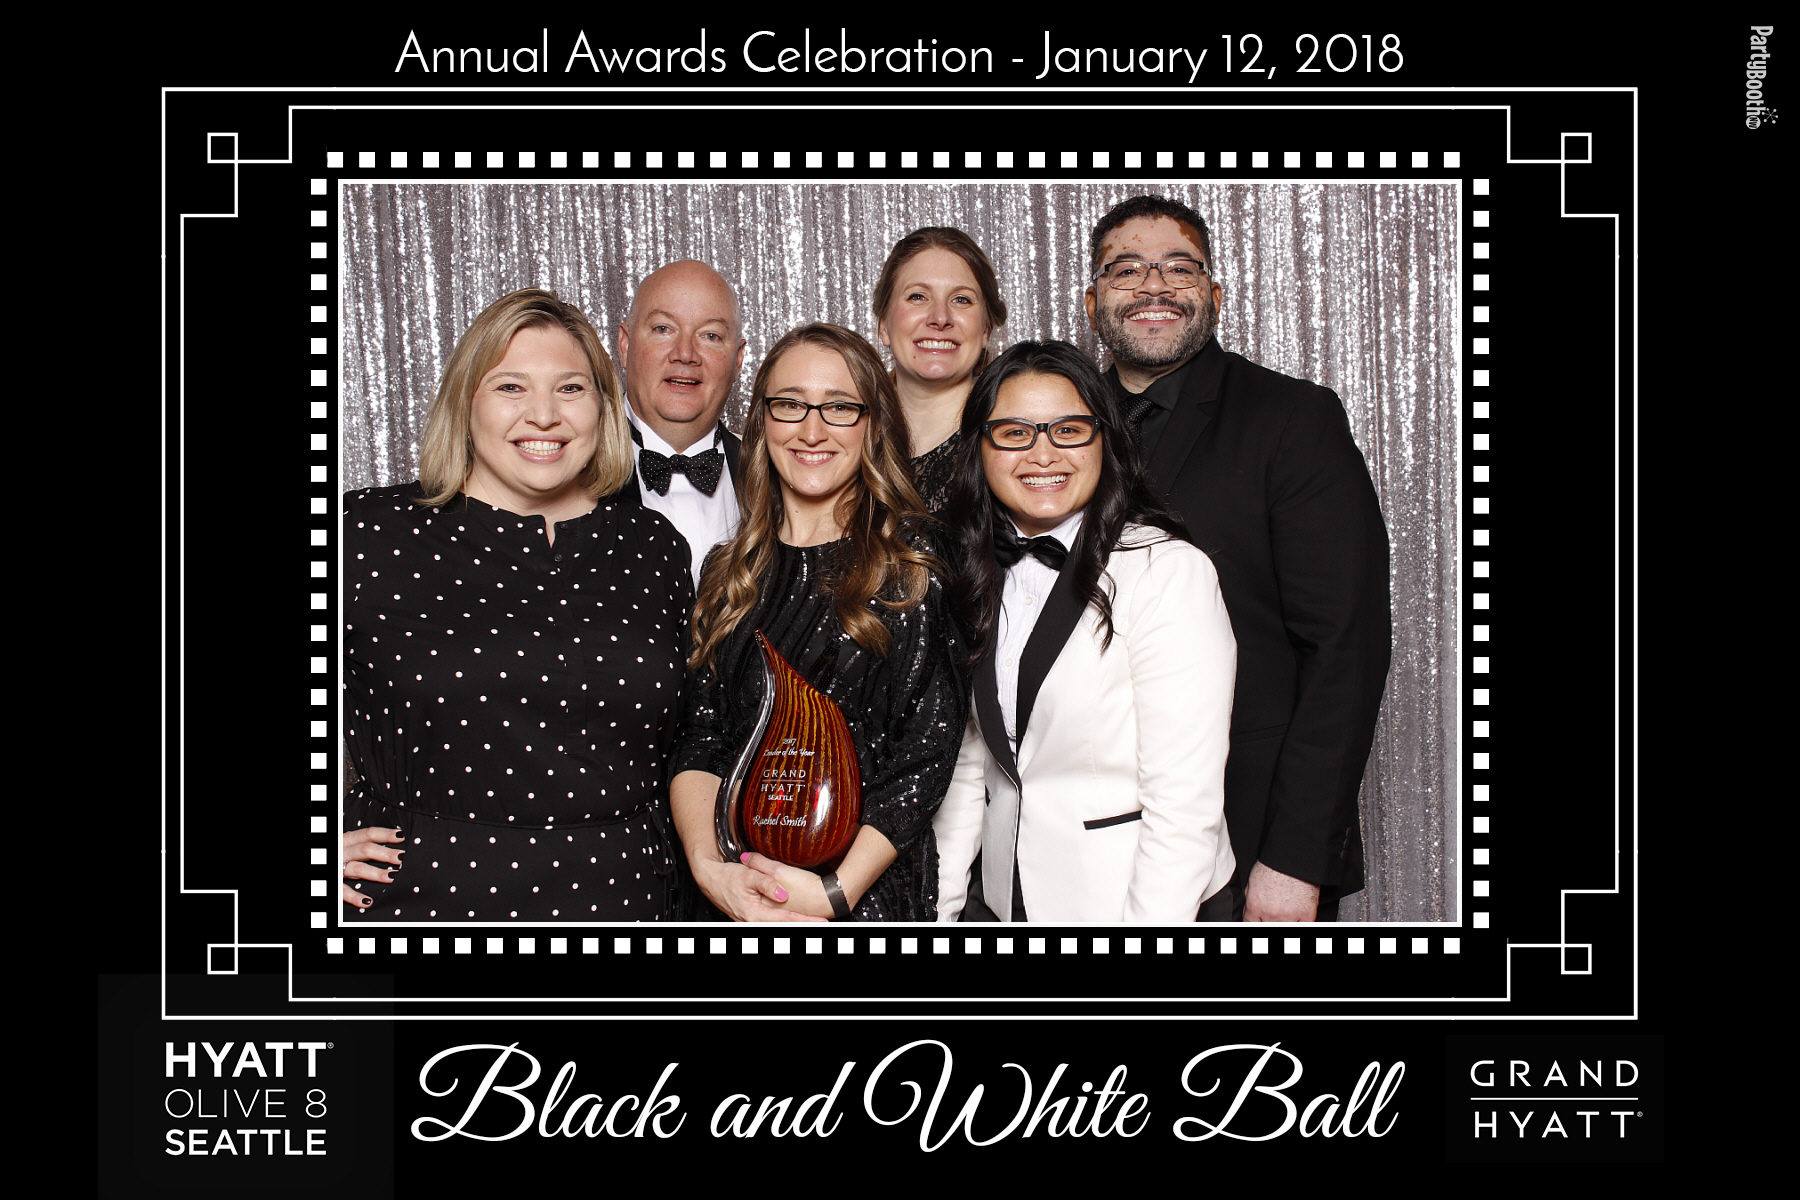 The teams from the Grand Hyatt Seattle and Hyatt Olive 8 joined together for an evening of fun with their friends and family, including a photo booth from PartyBoothNW - Tonight We PartyBooth! Seattle Photo Booth ©2018 PartyBoothNW.com